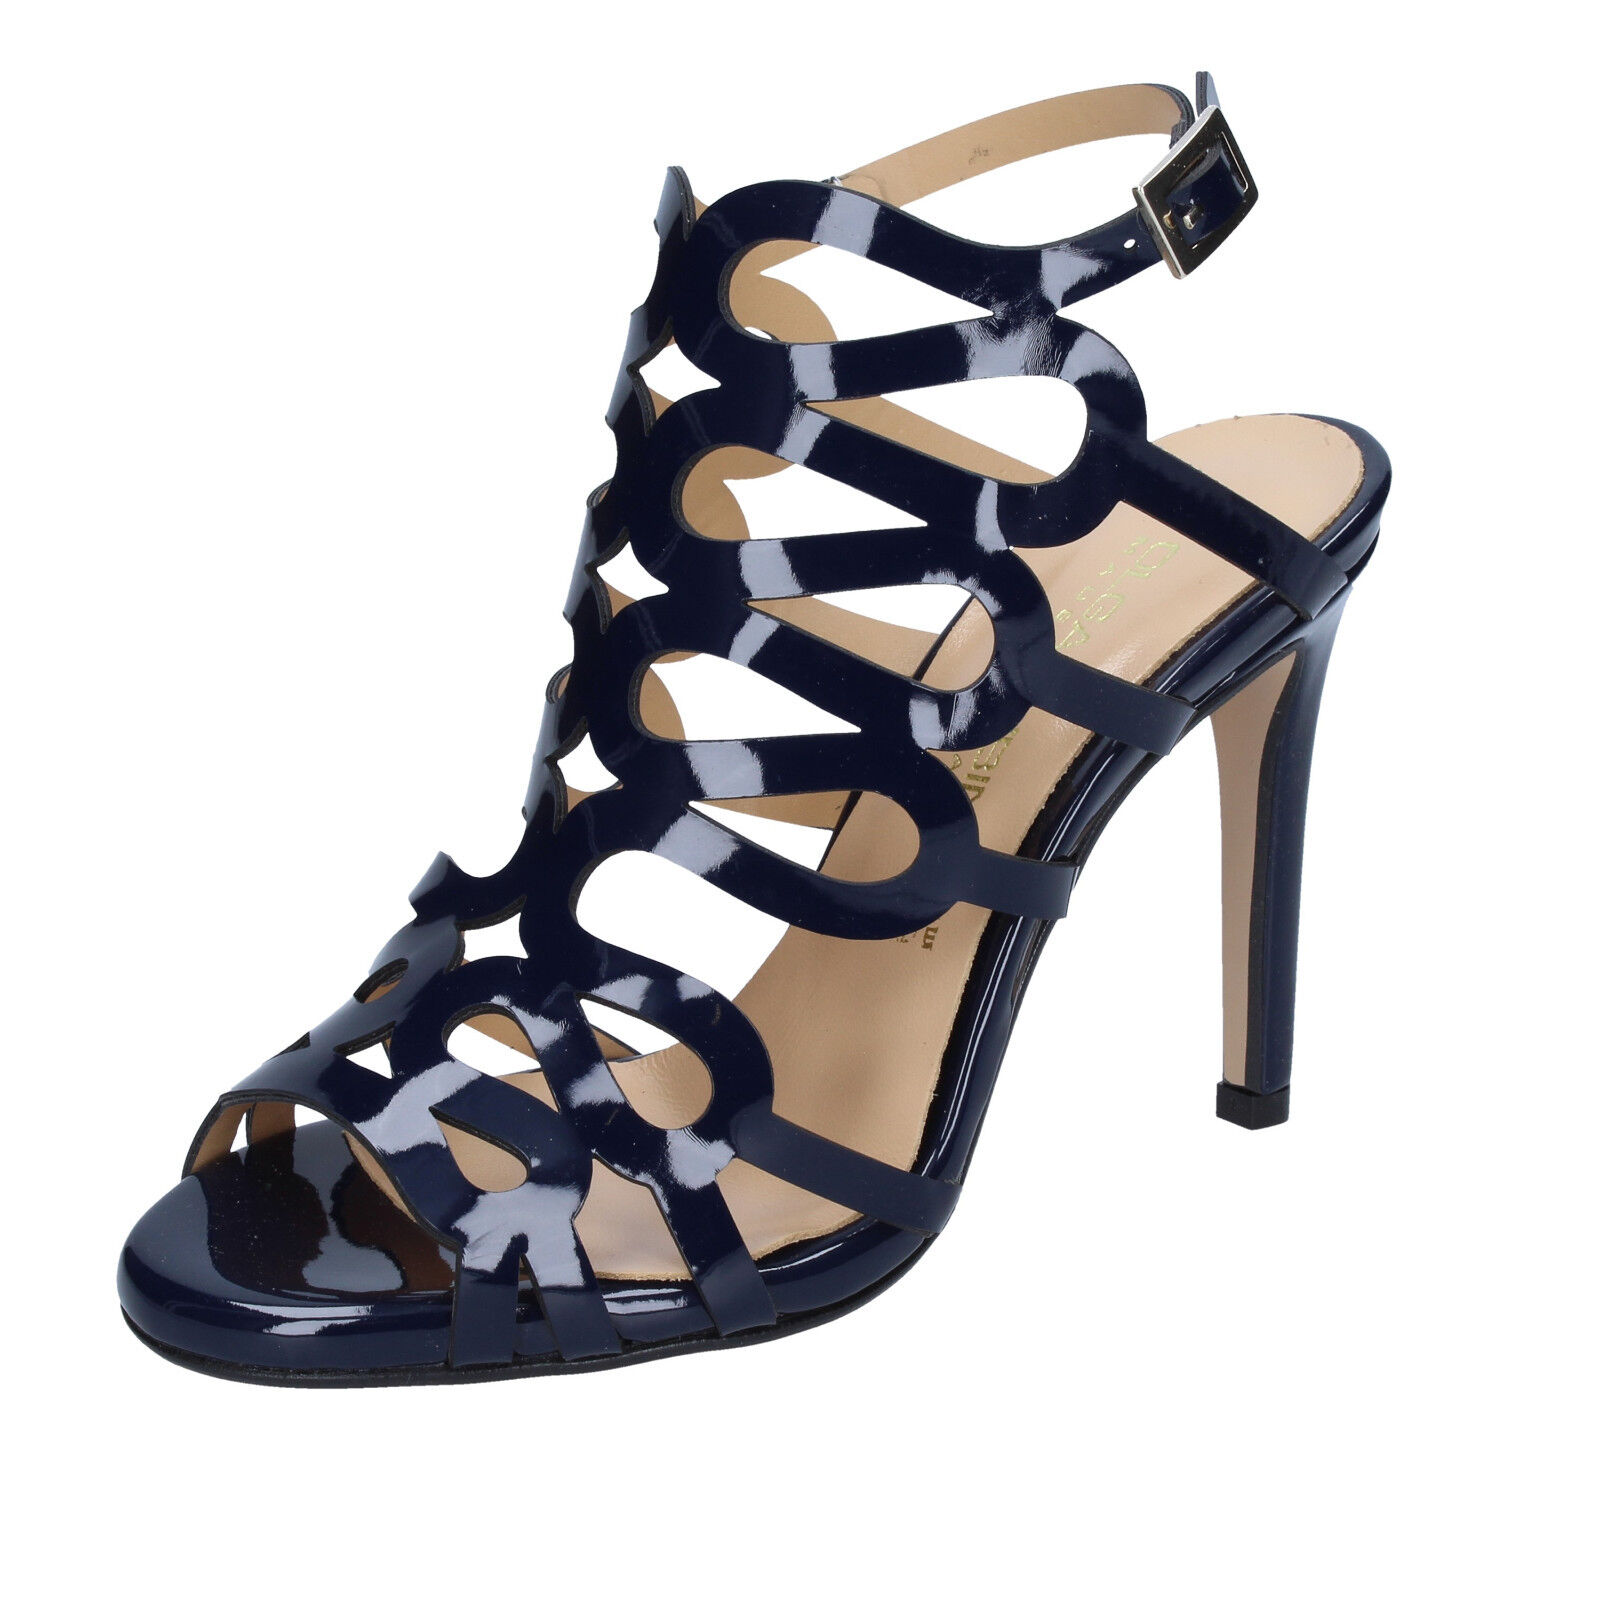 Women's shoes OLGA RUBINI 4 (EU 37) sandals bluee patent leather BS91-37